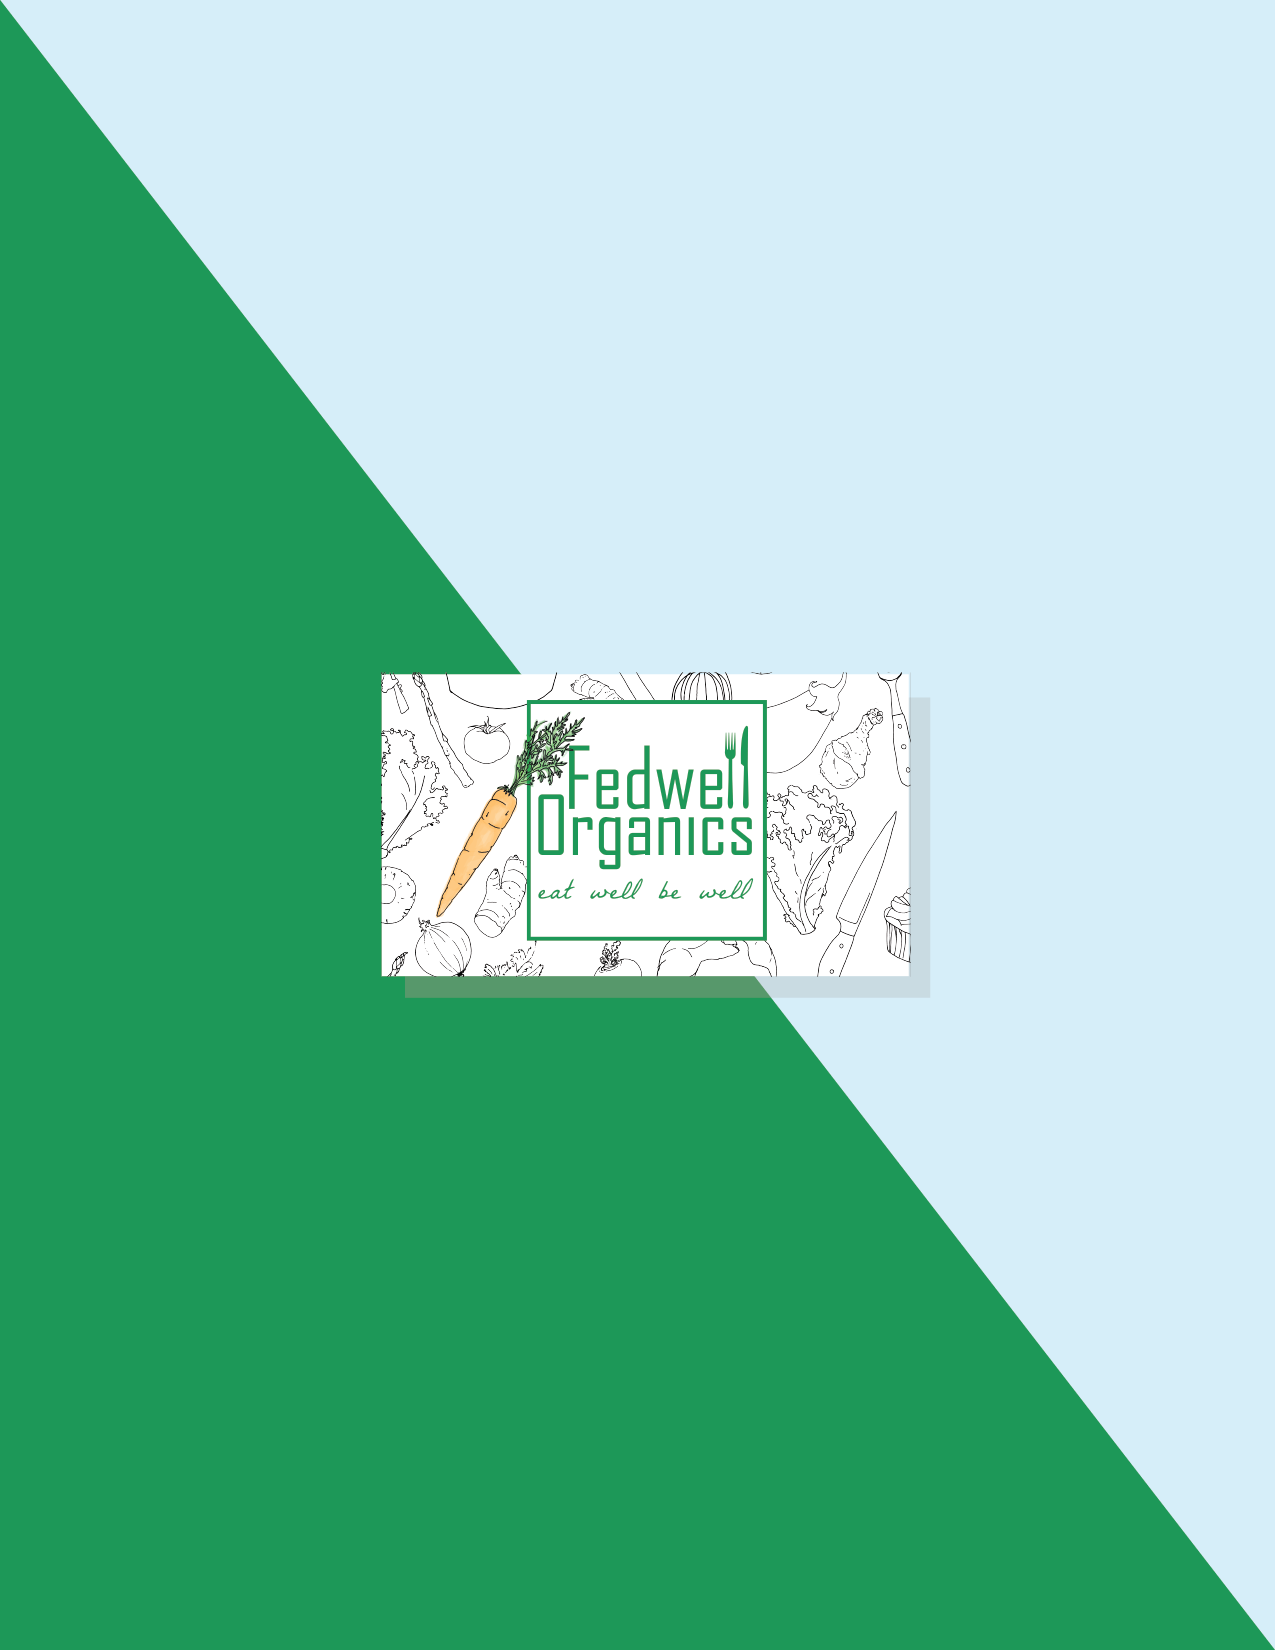 business card pic fedwell organics-01.png